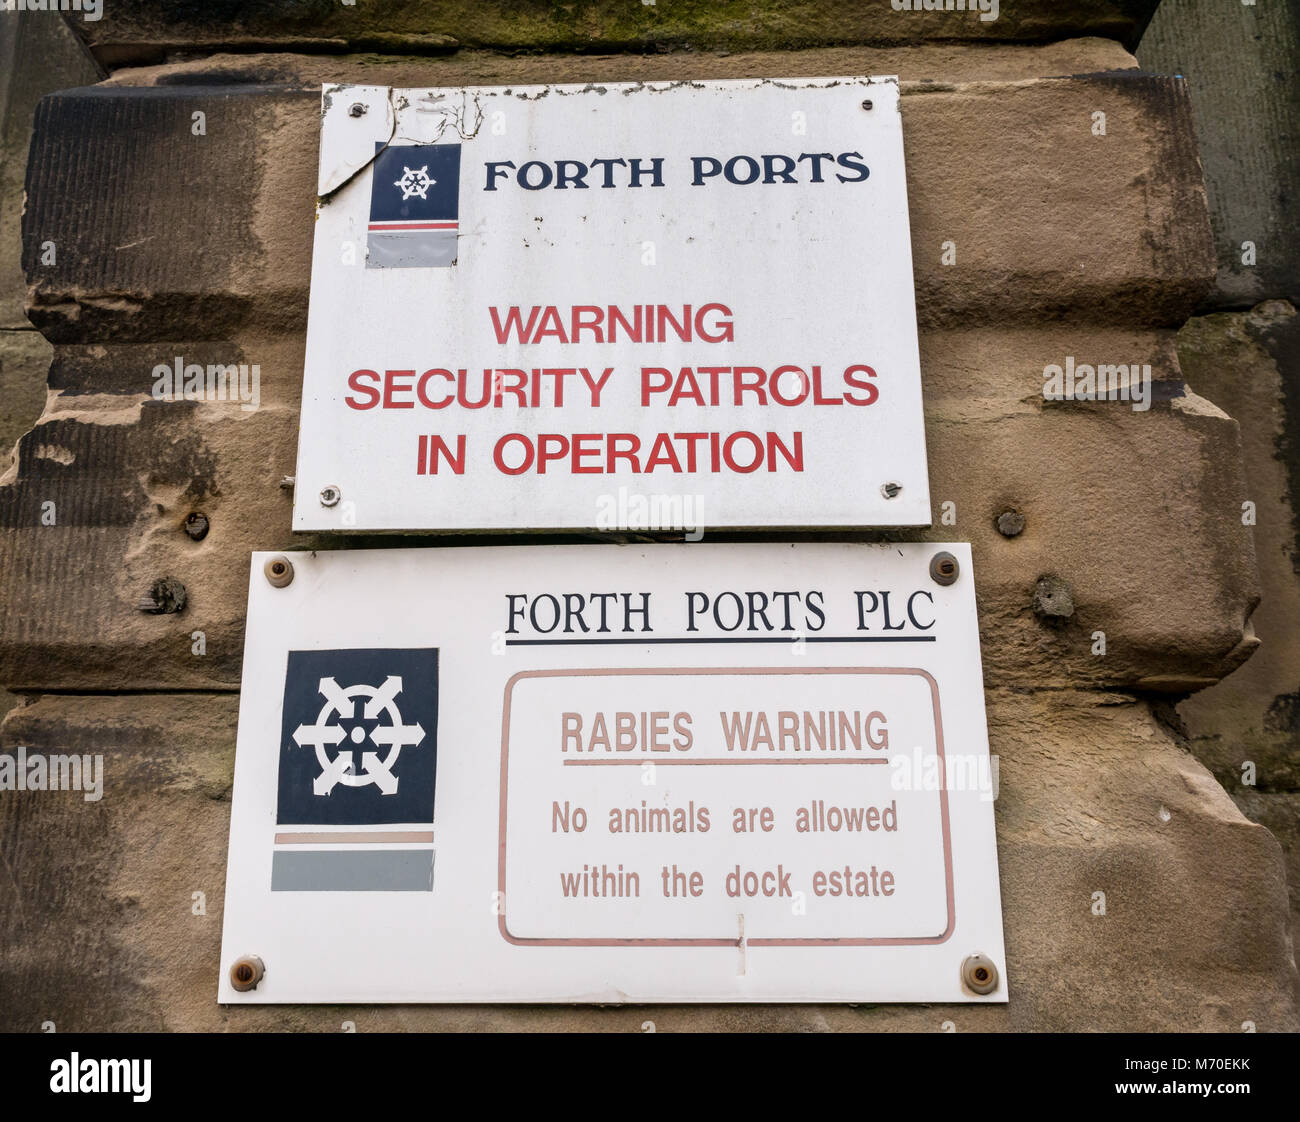 Close up of Forth Ports entrance sign warning about security patrols and rabies, Leith Dock, Edinburgh, Scotland, - Stock Image